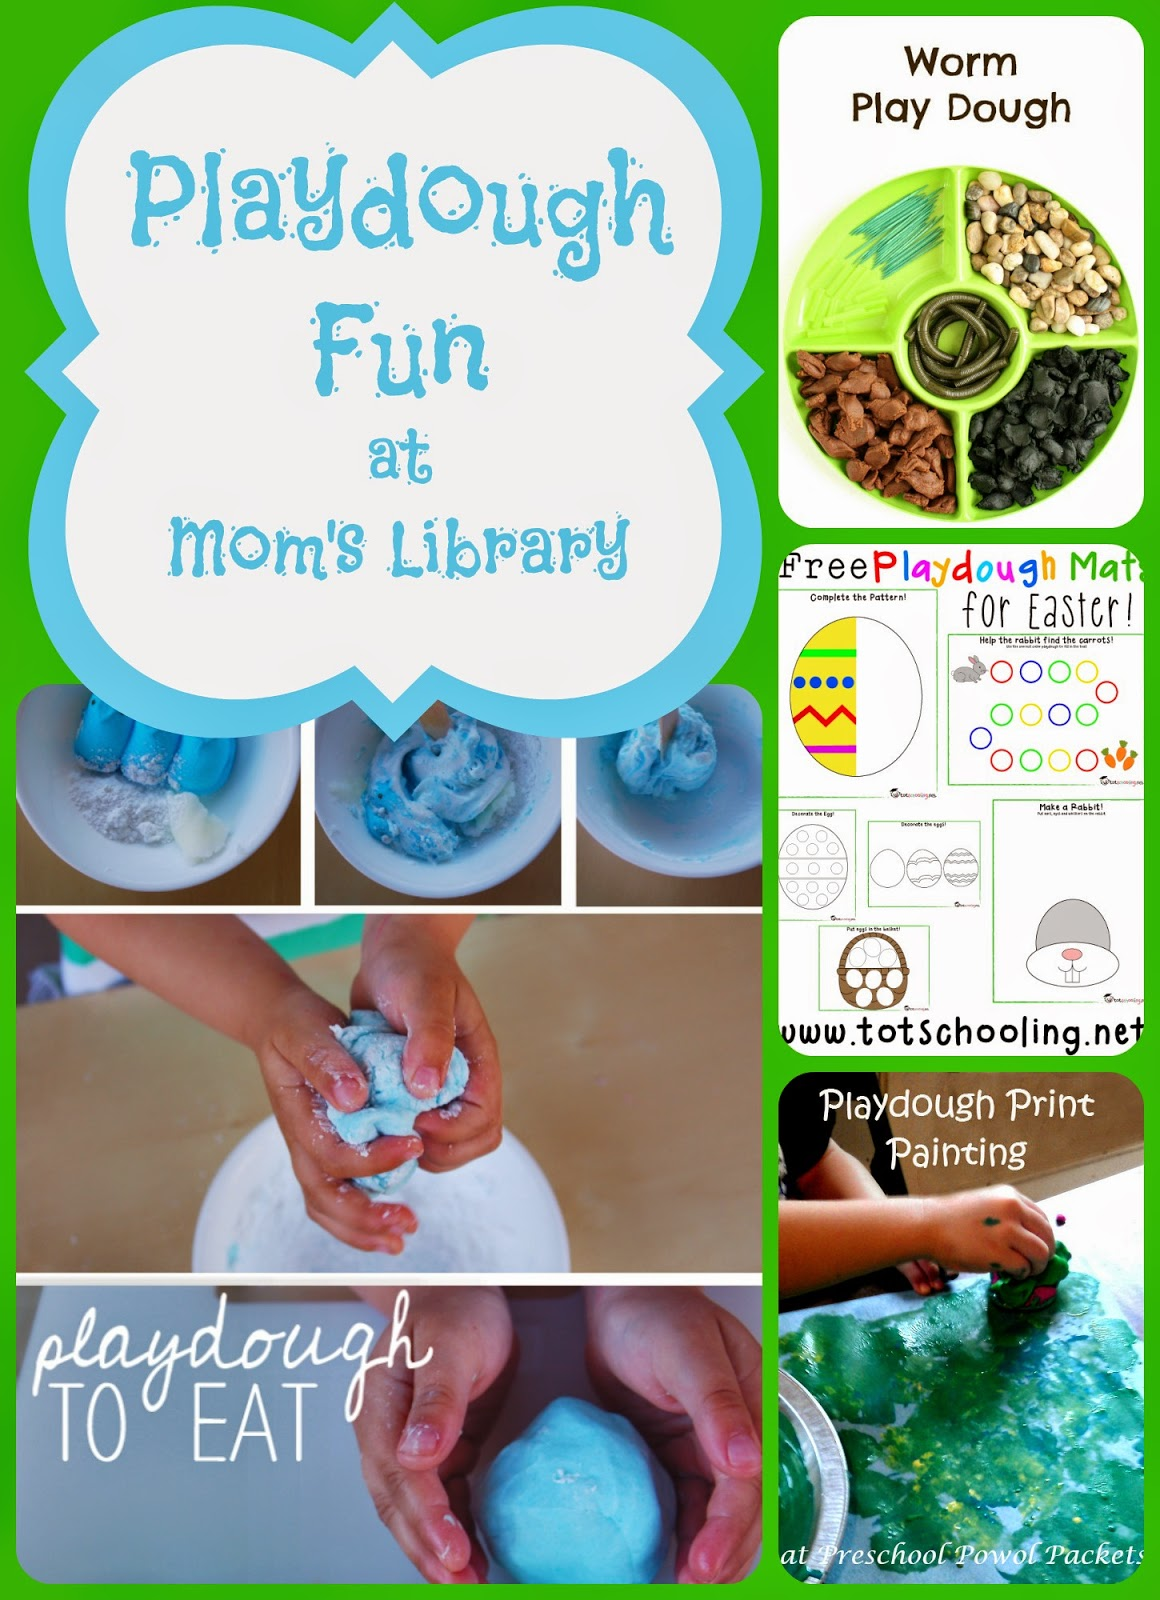 Playdough Fun on Mom's Library